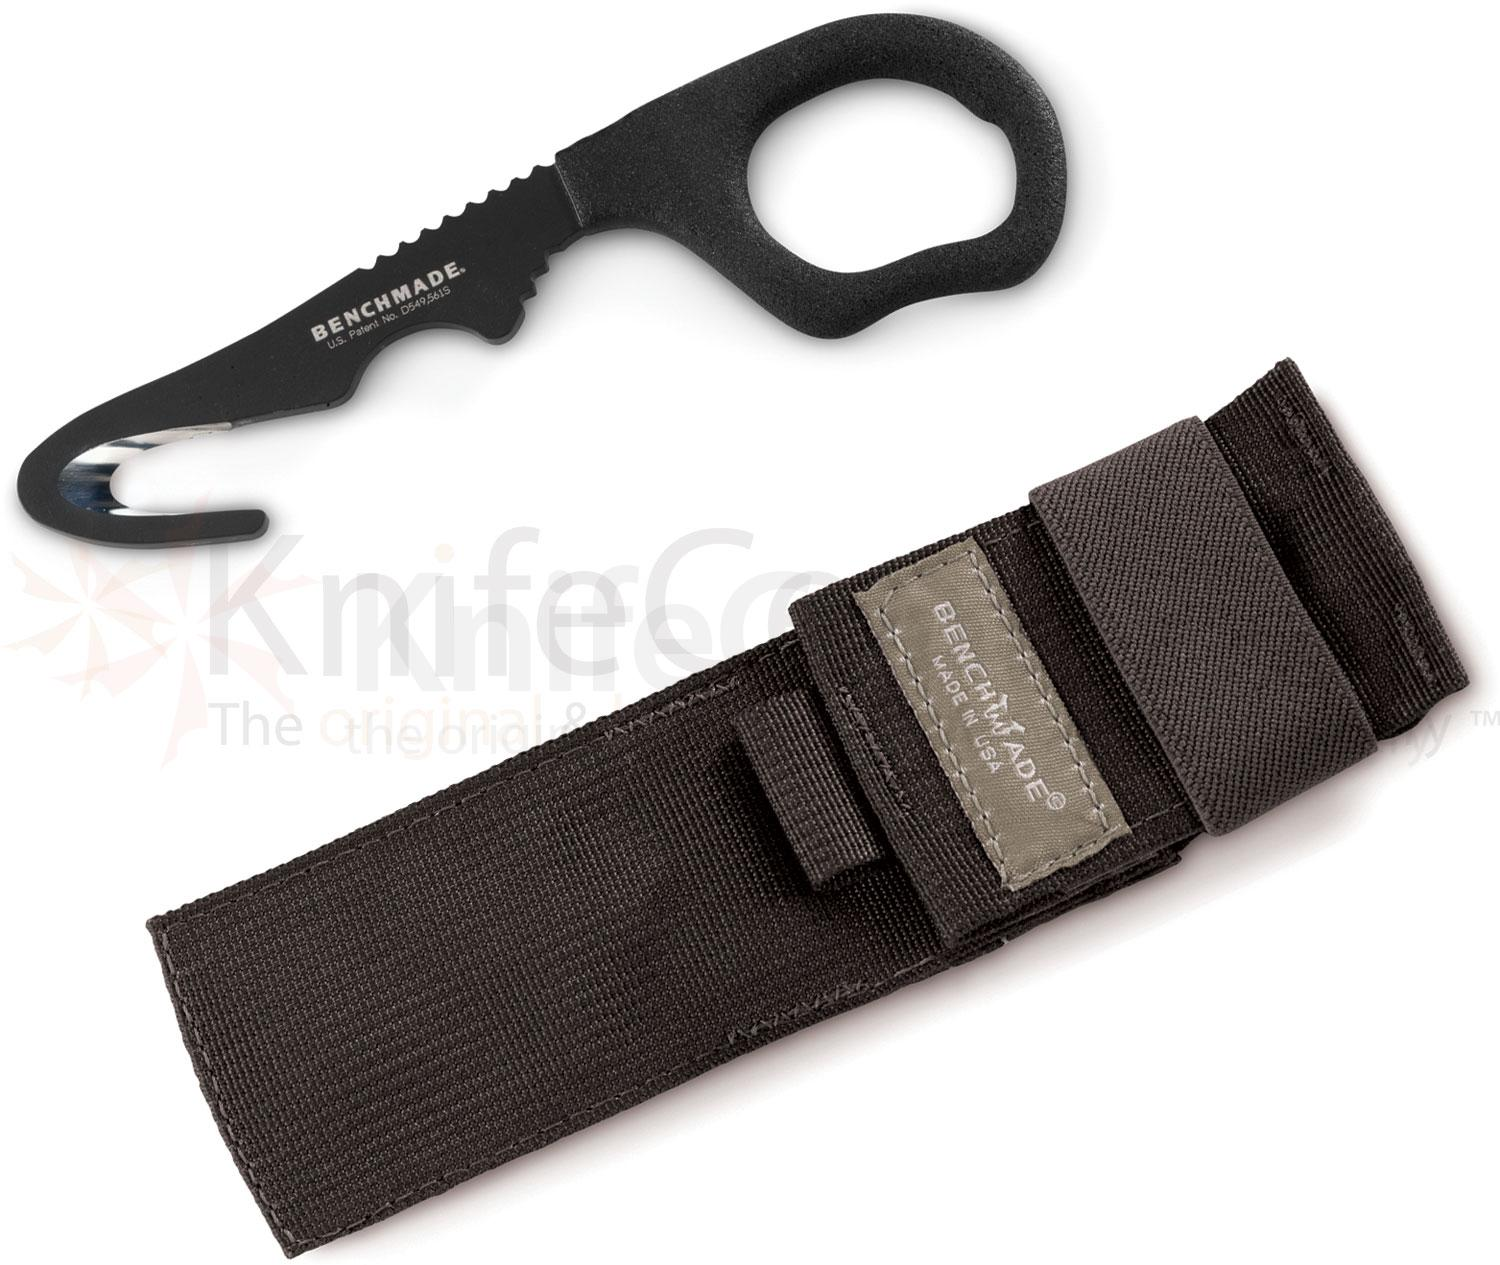 Benchmade 15 Safety Cutter Rescue Hook, 6.10 inch Overall, Soft Black MOLLE Sheath